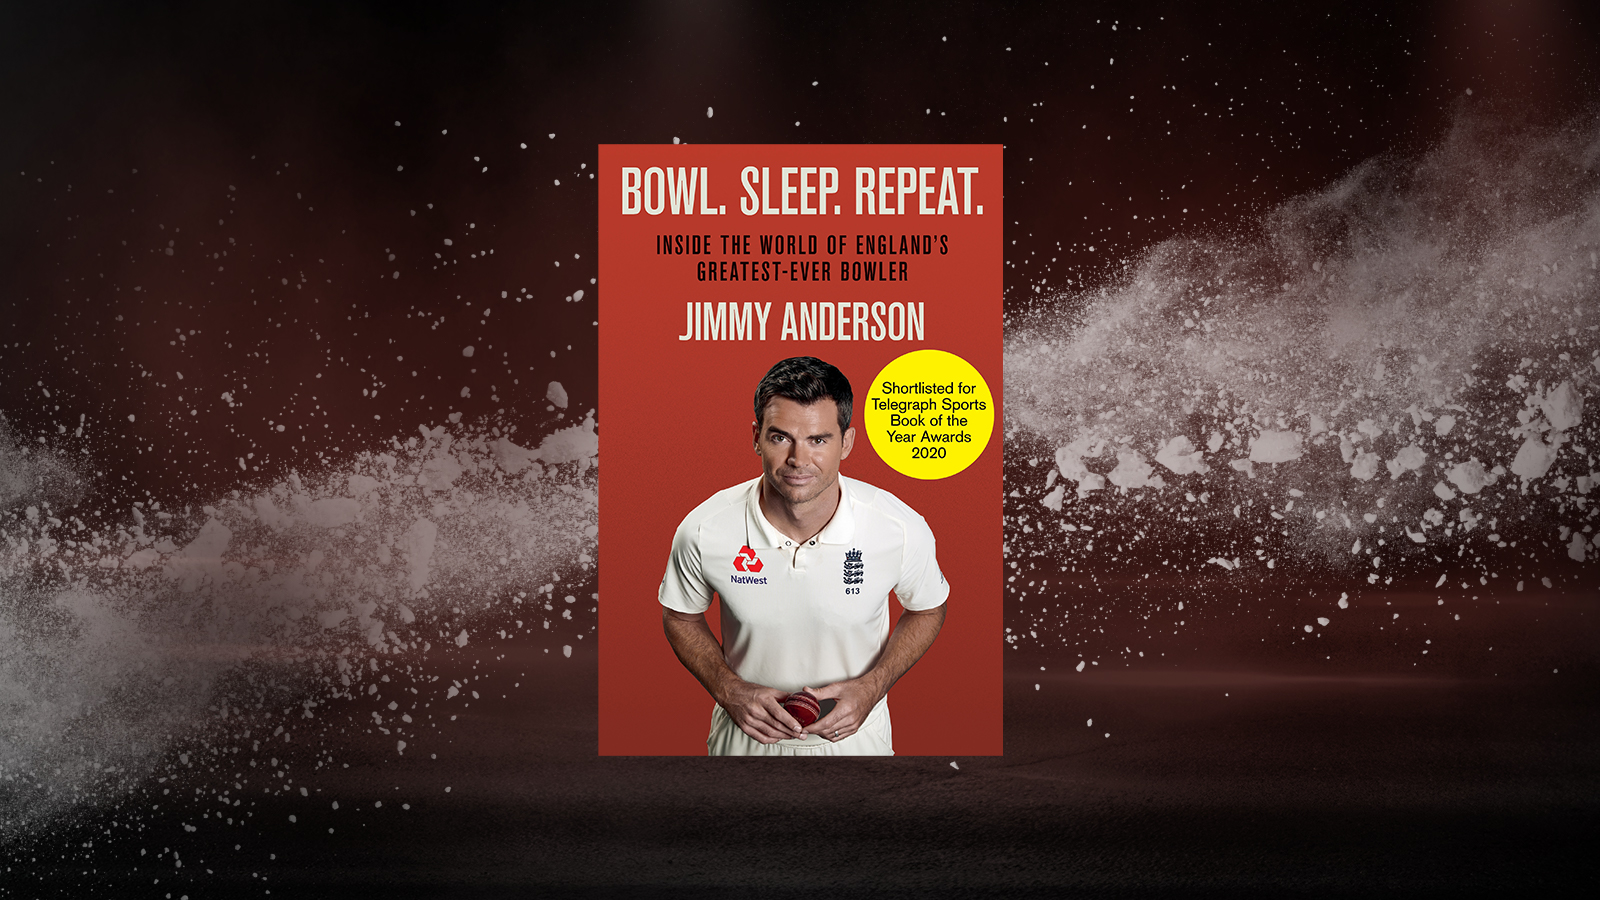 Interview with Felix White, Ghostwriter of Jimmy Anderson's Autobiography 'Bowl. Sleep. Repeat.'